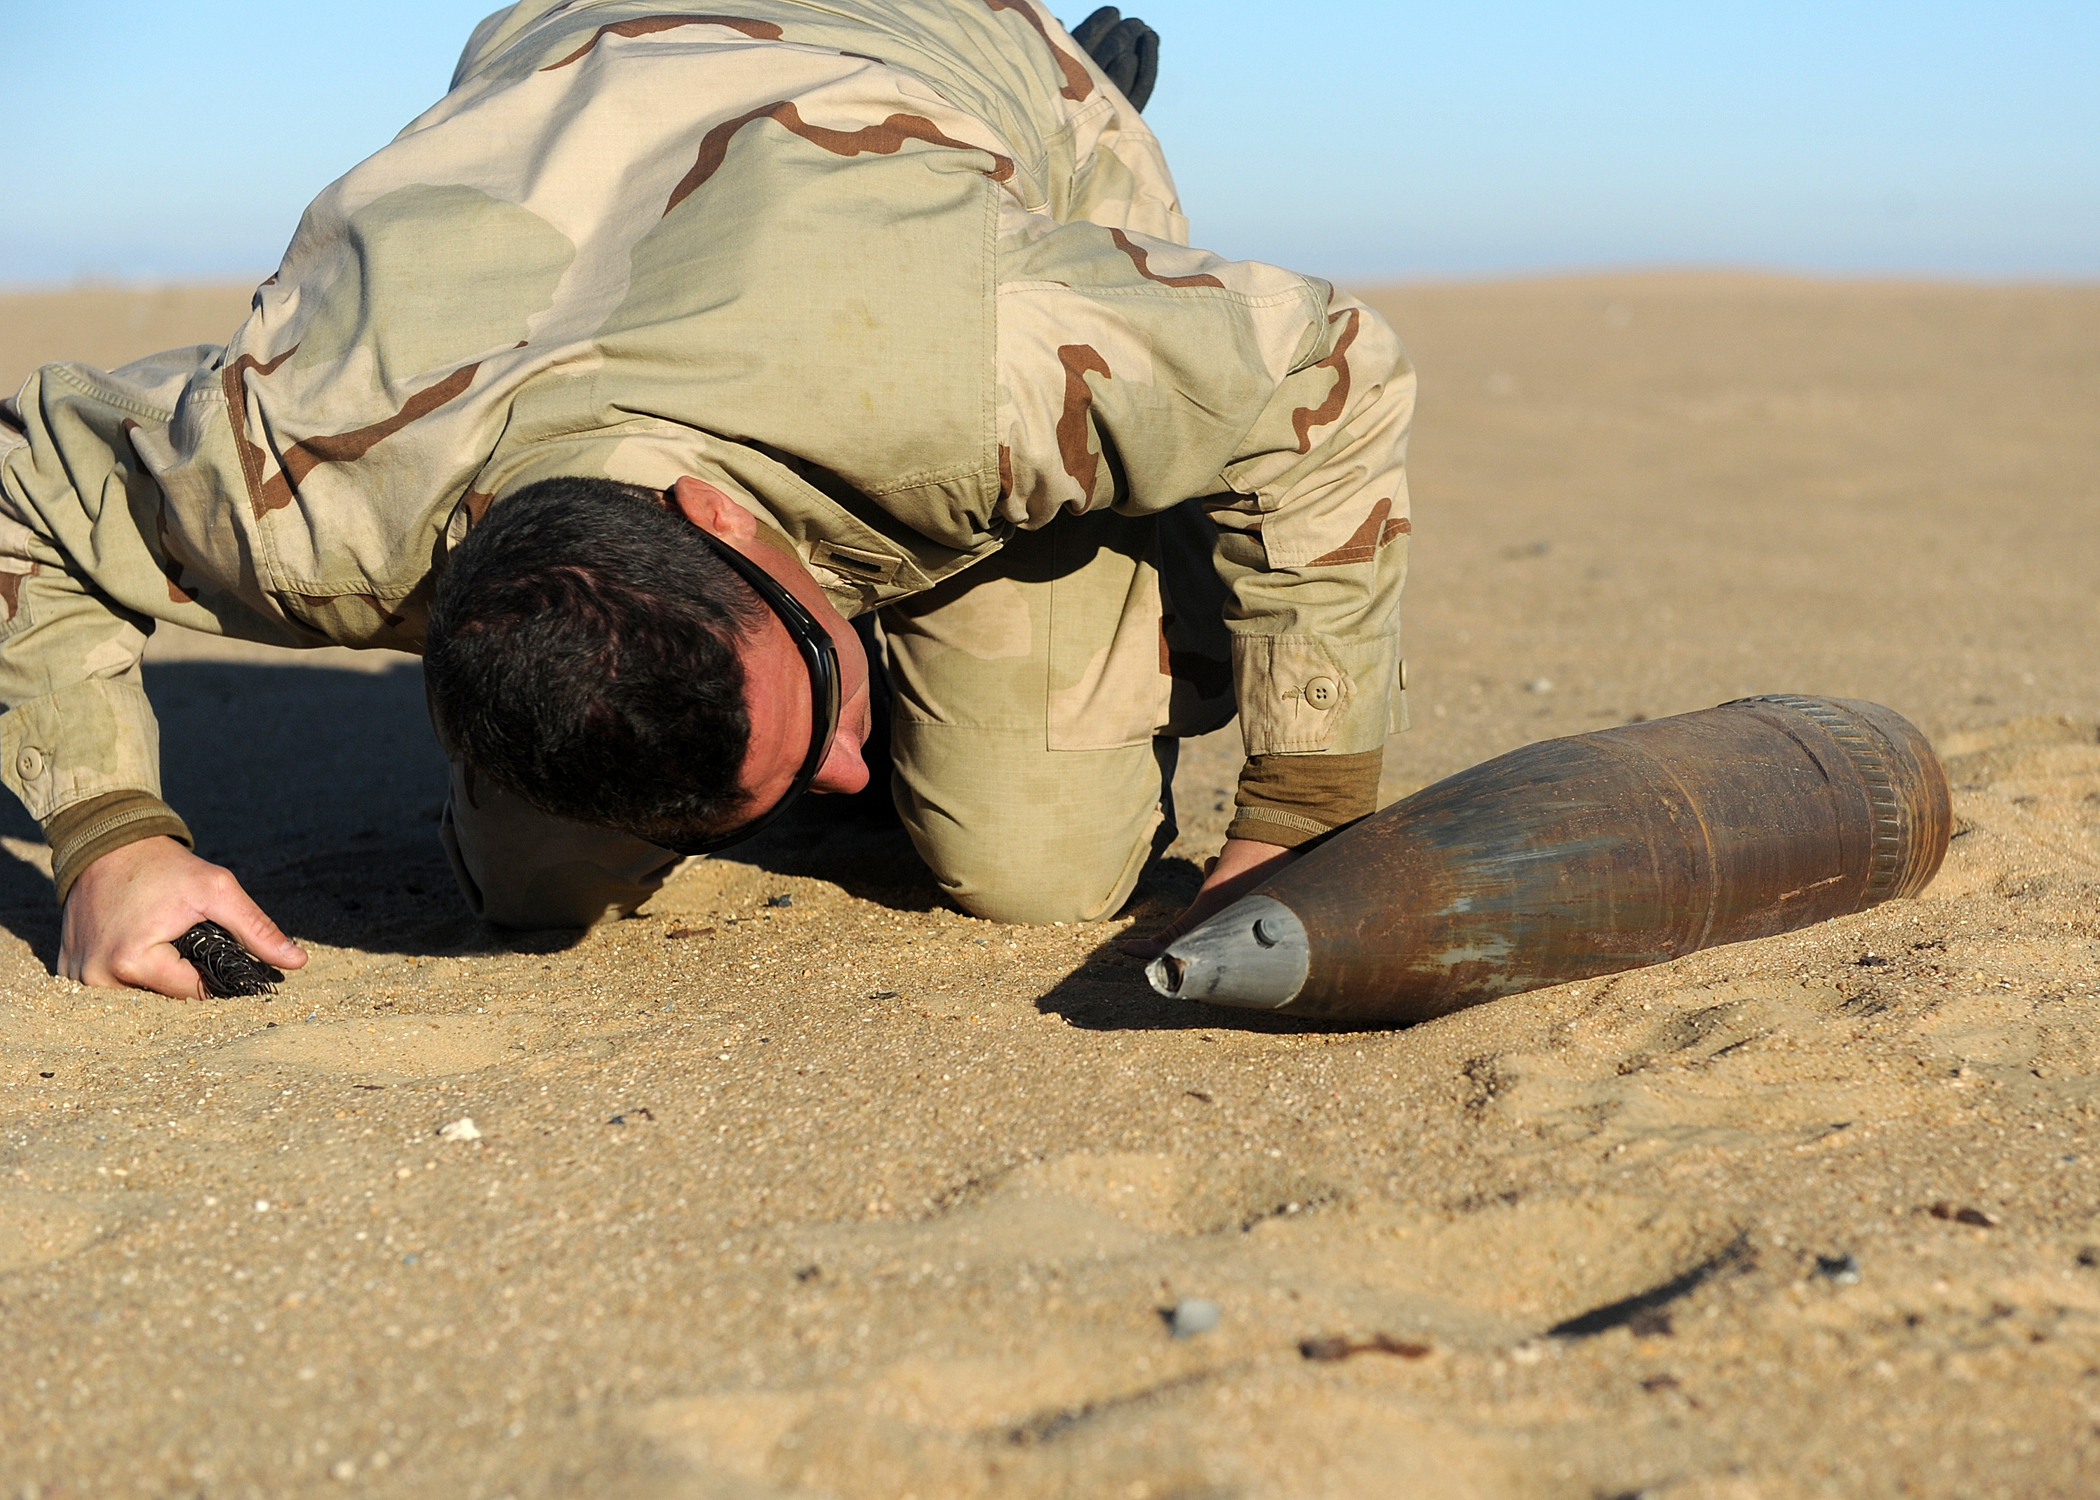 EOD technician investigating aged EOD